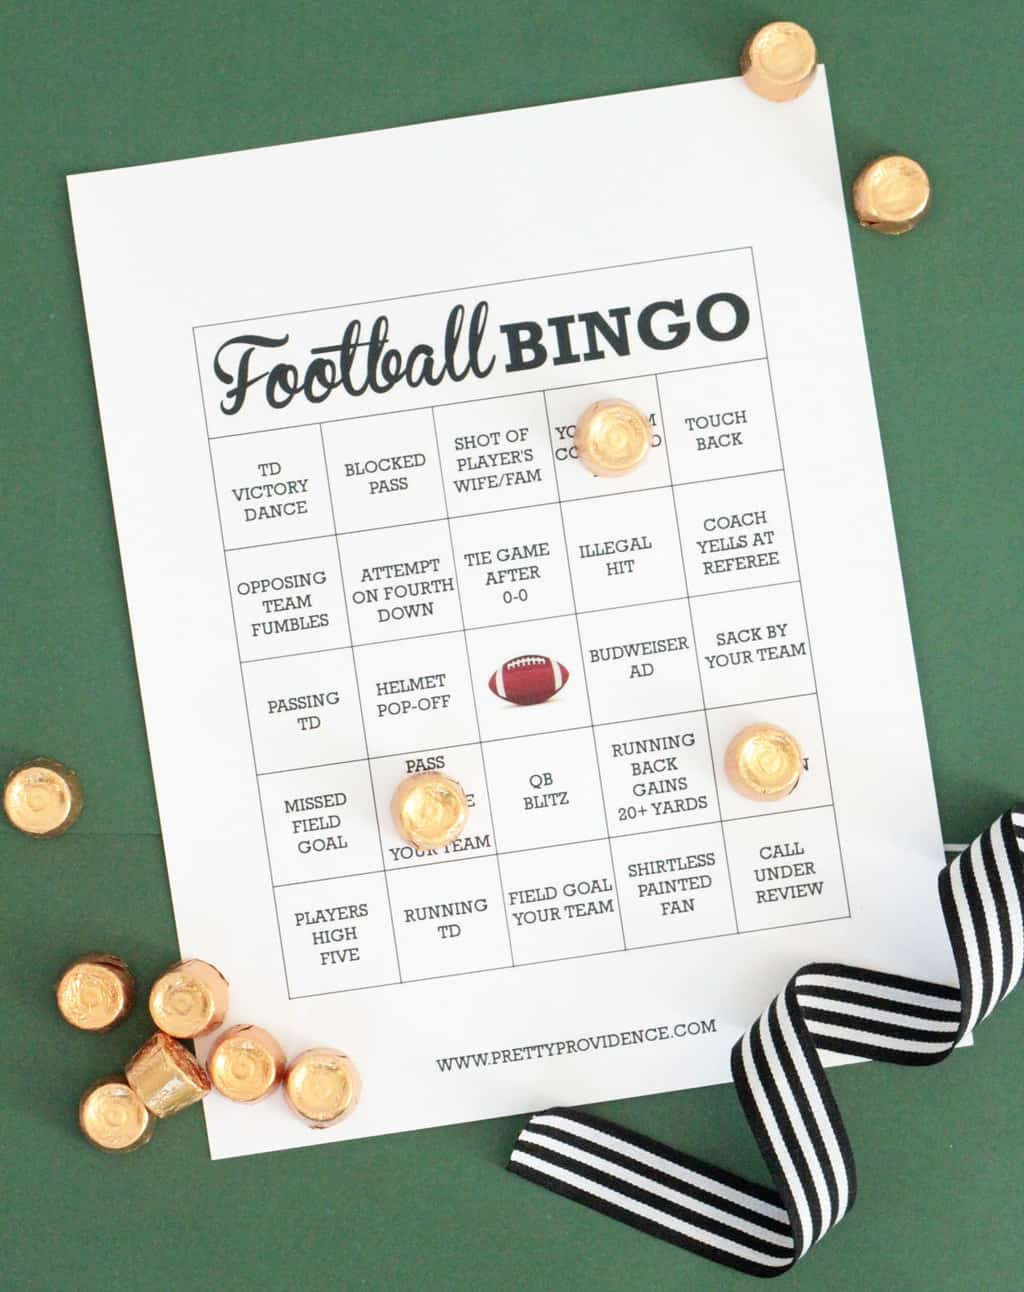 Free Printable Football Bingo Cards - Pretty Providence